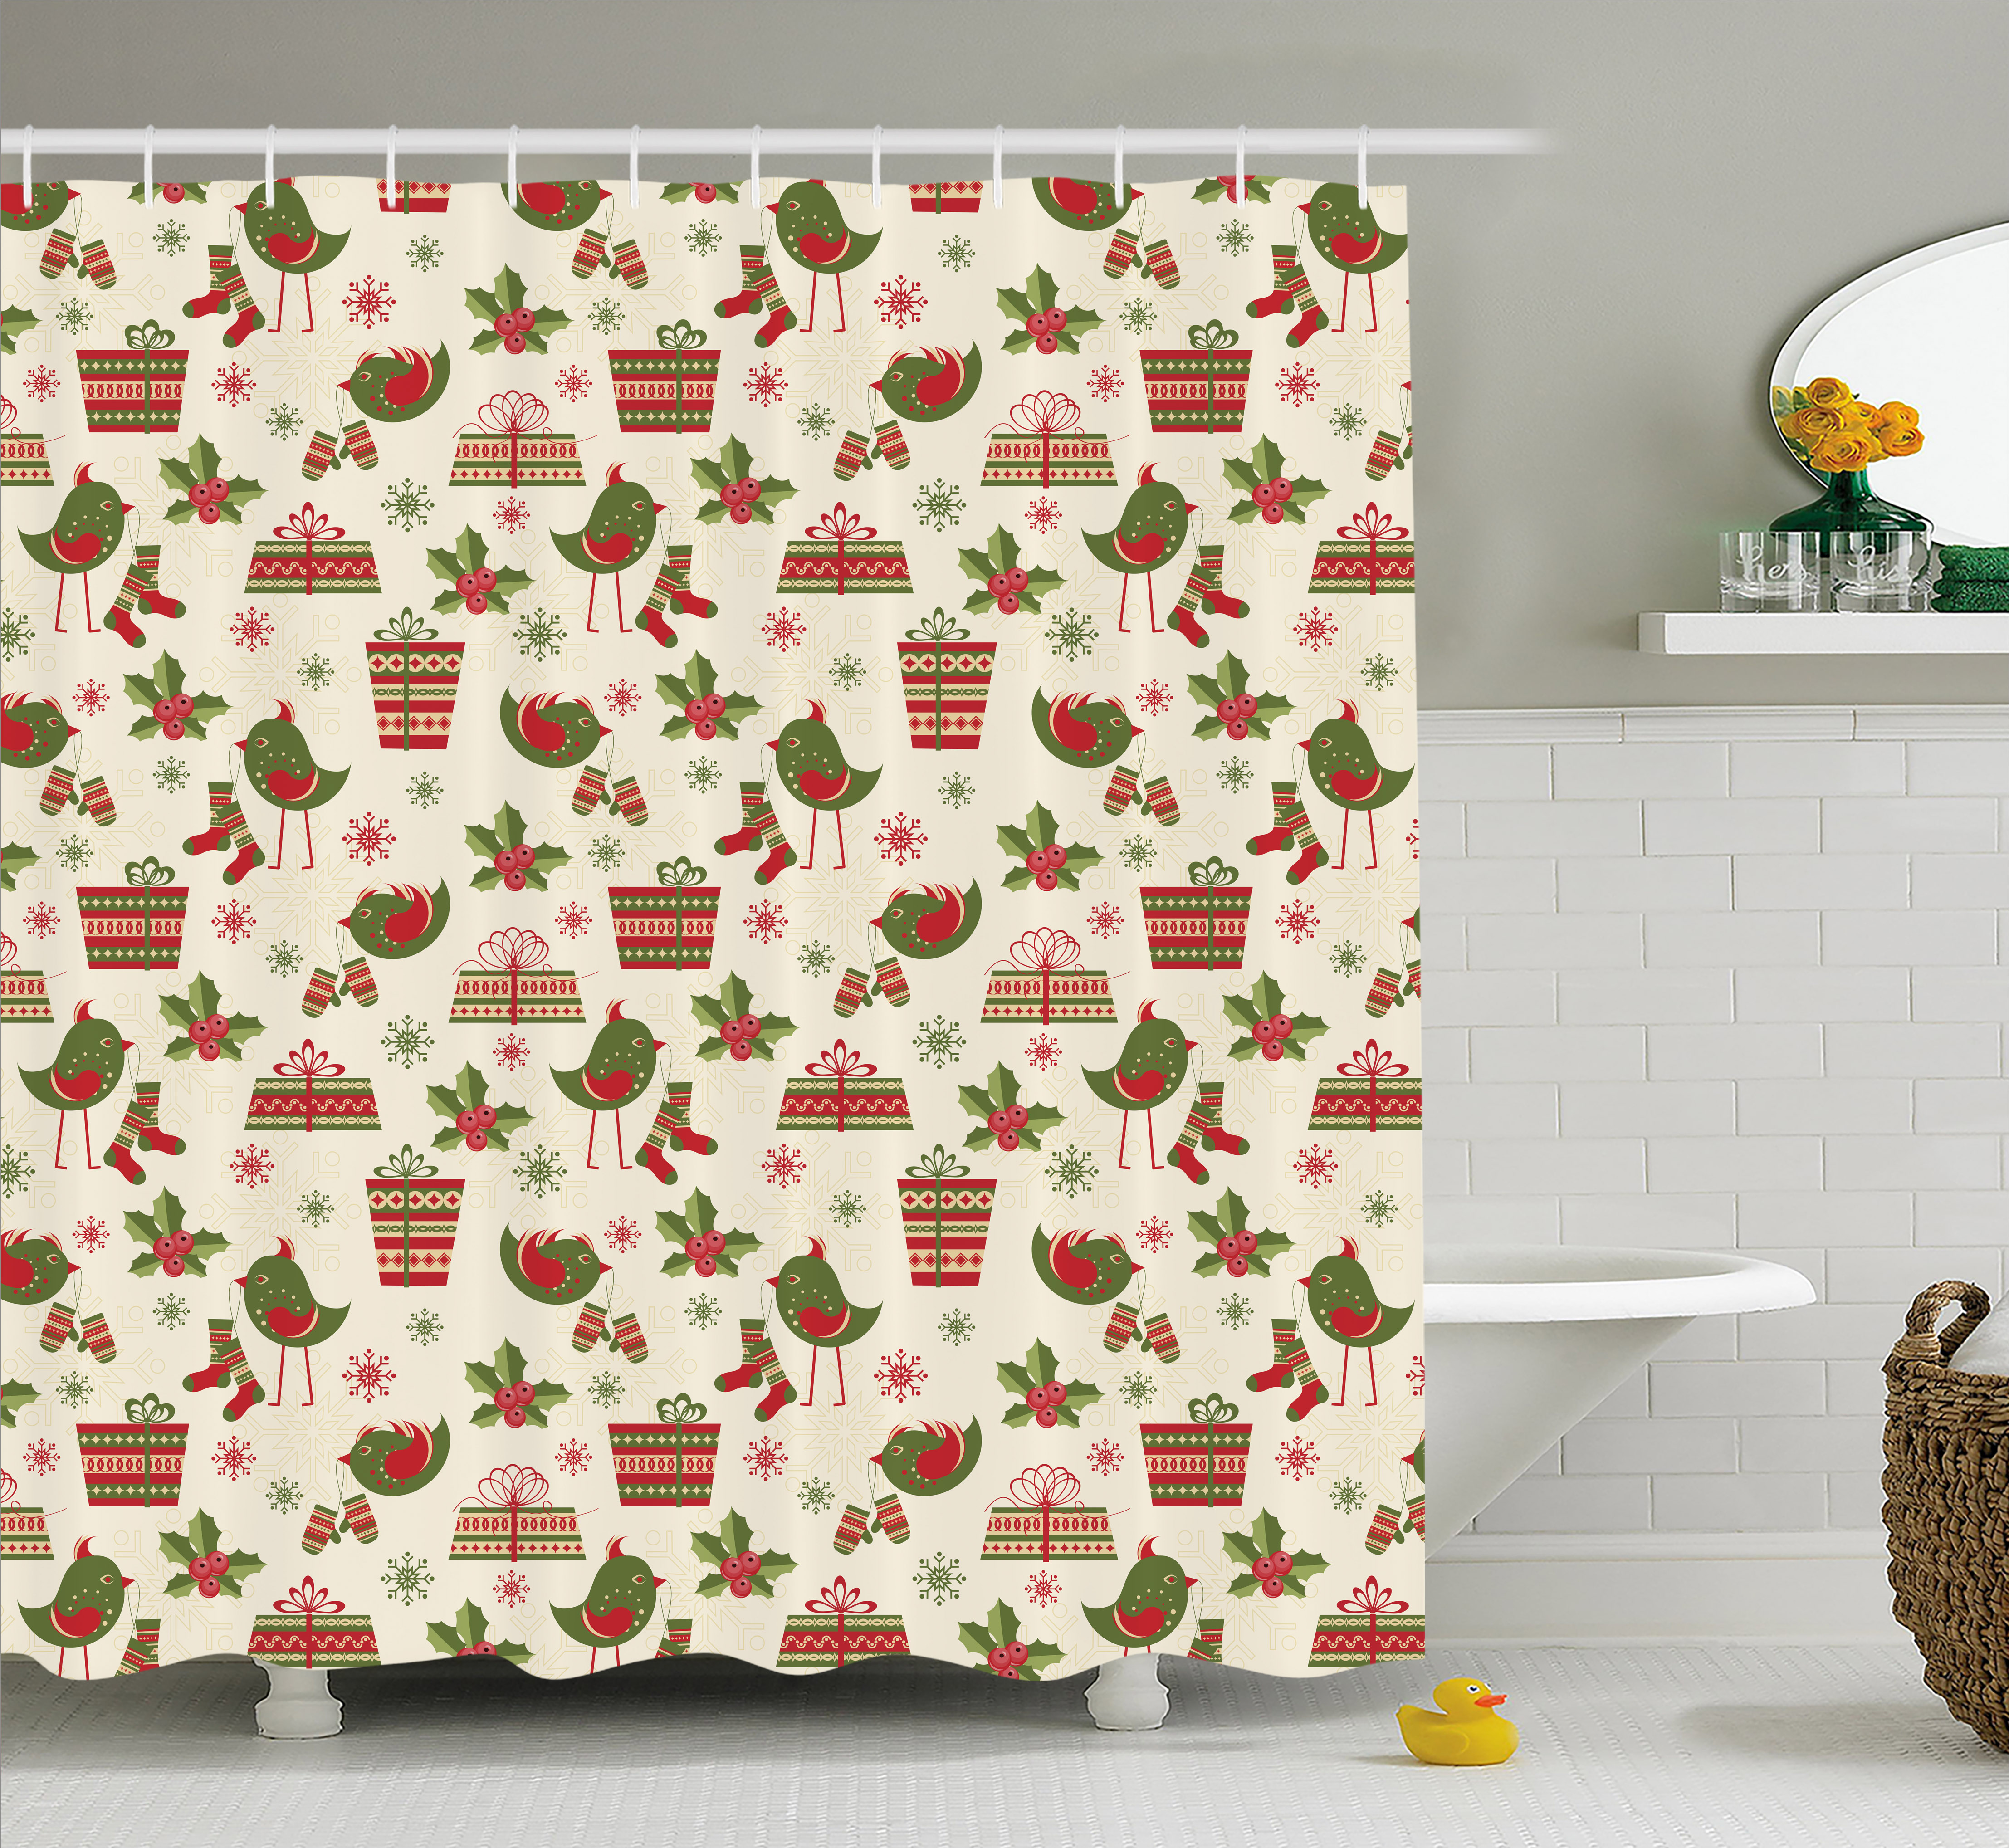 Christmas Shower Curtain, Surprise Boxes With Rich Patterns And Holiday